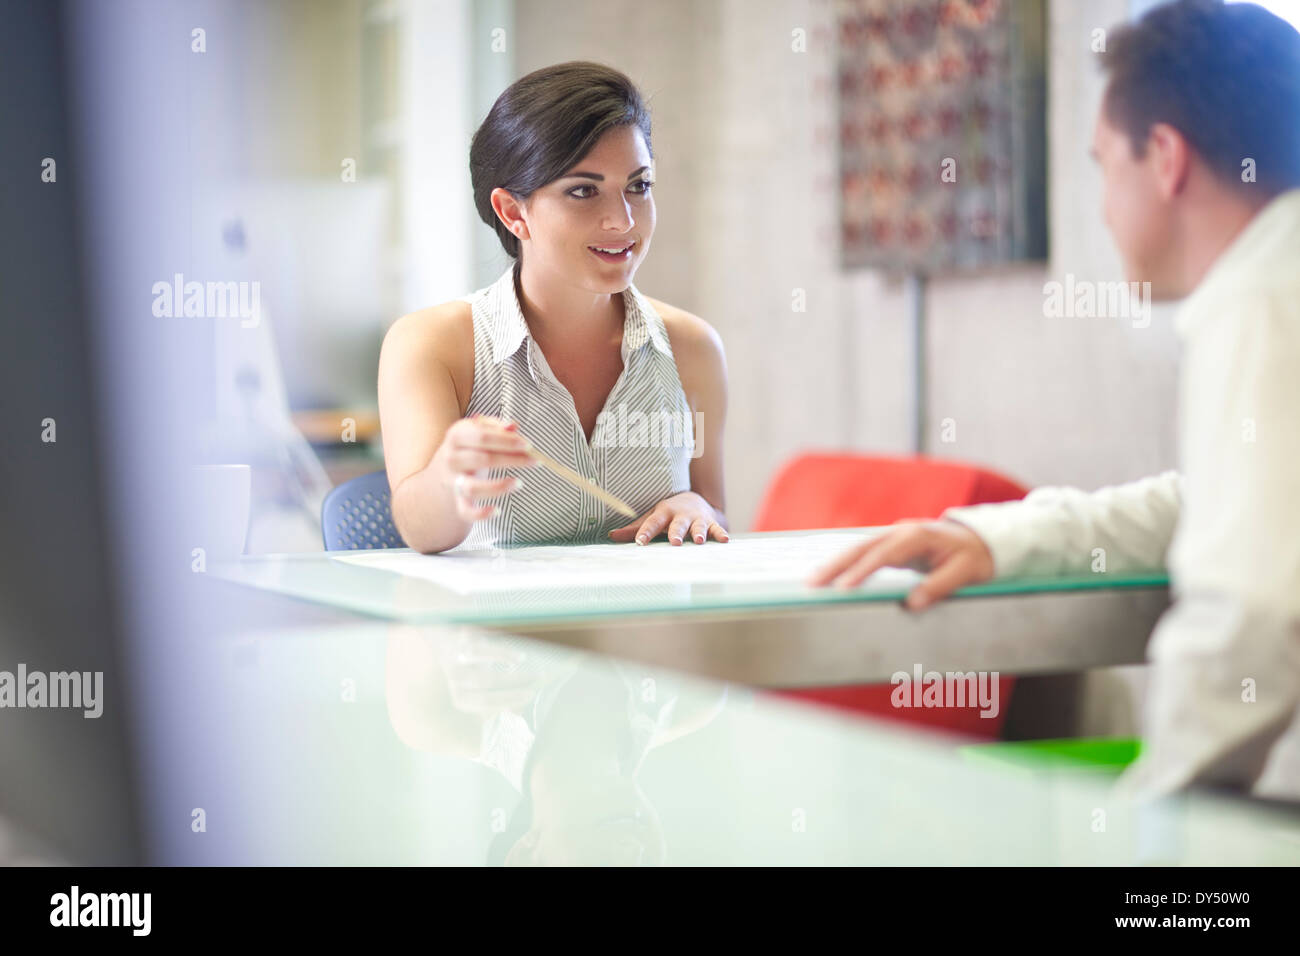 Young businesswoman meeting client in office Photo Stock